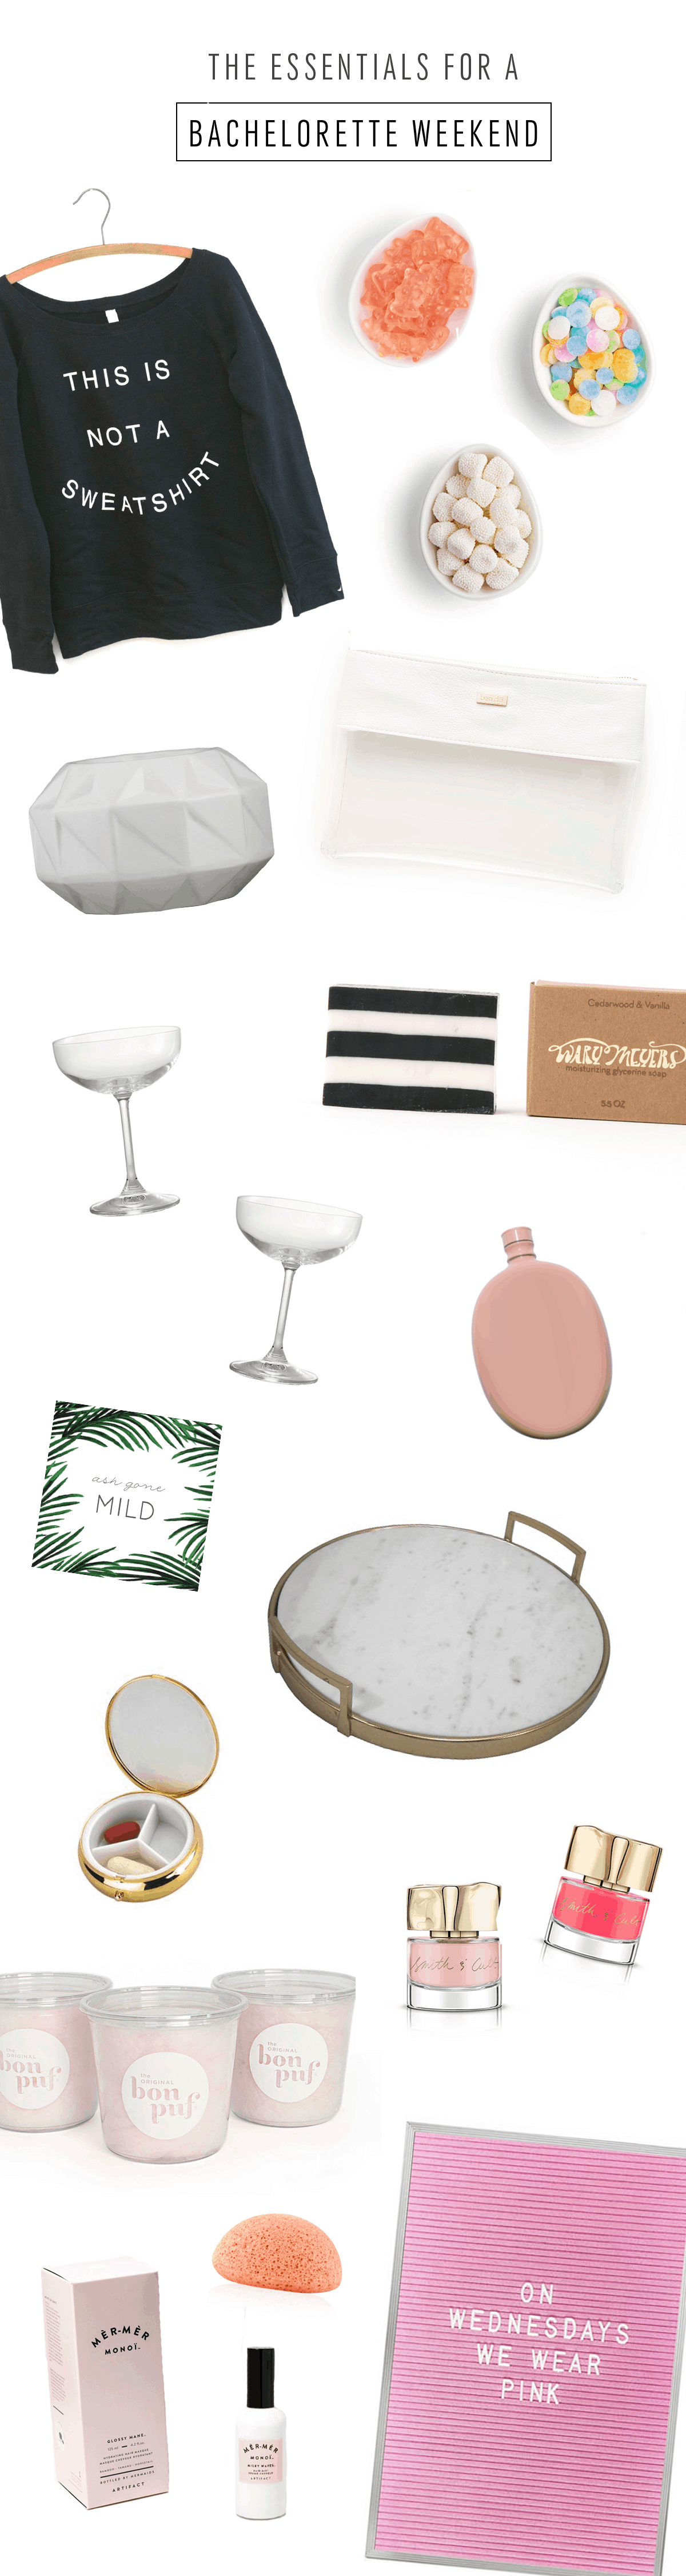 The Essentials for a Perfect Bachelorette Weekend by Ashley Rose of Sugar & Cloth, an award winning DIY blog.